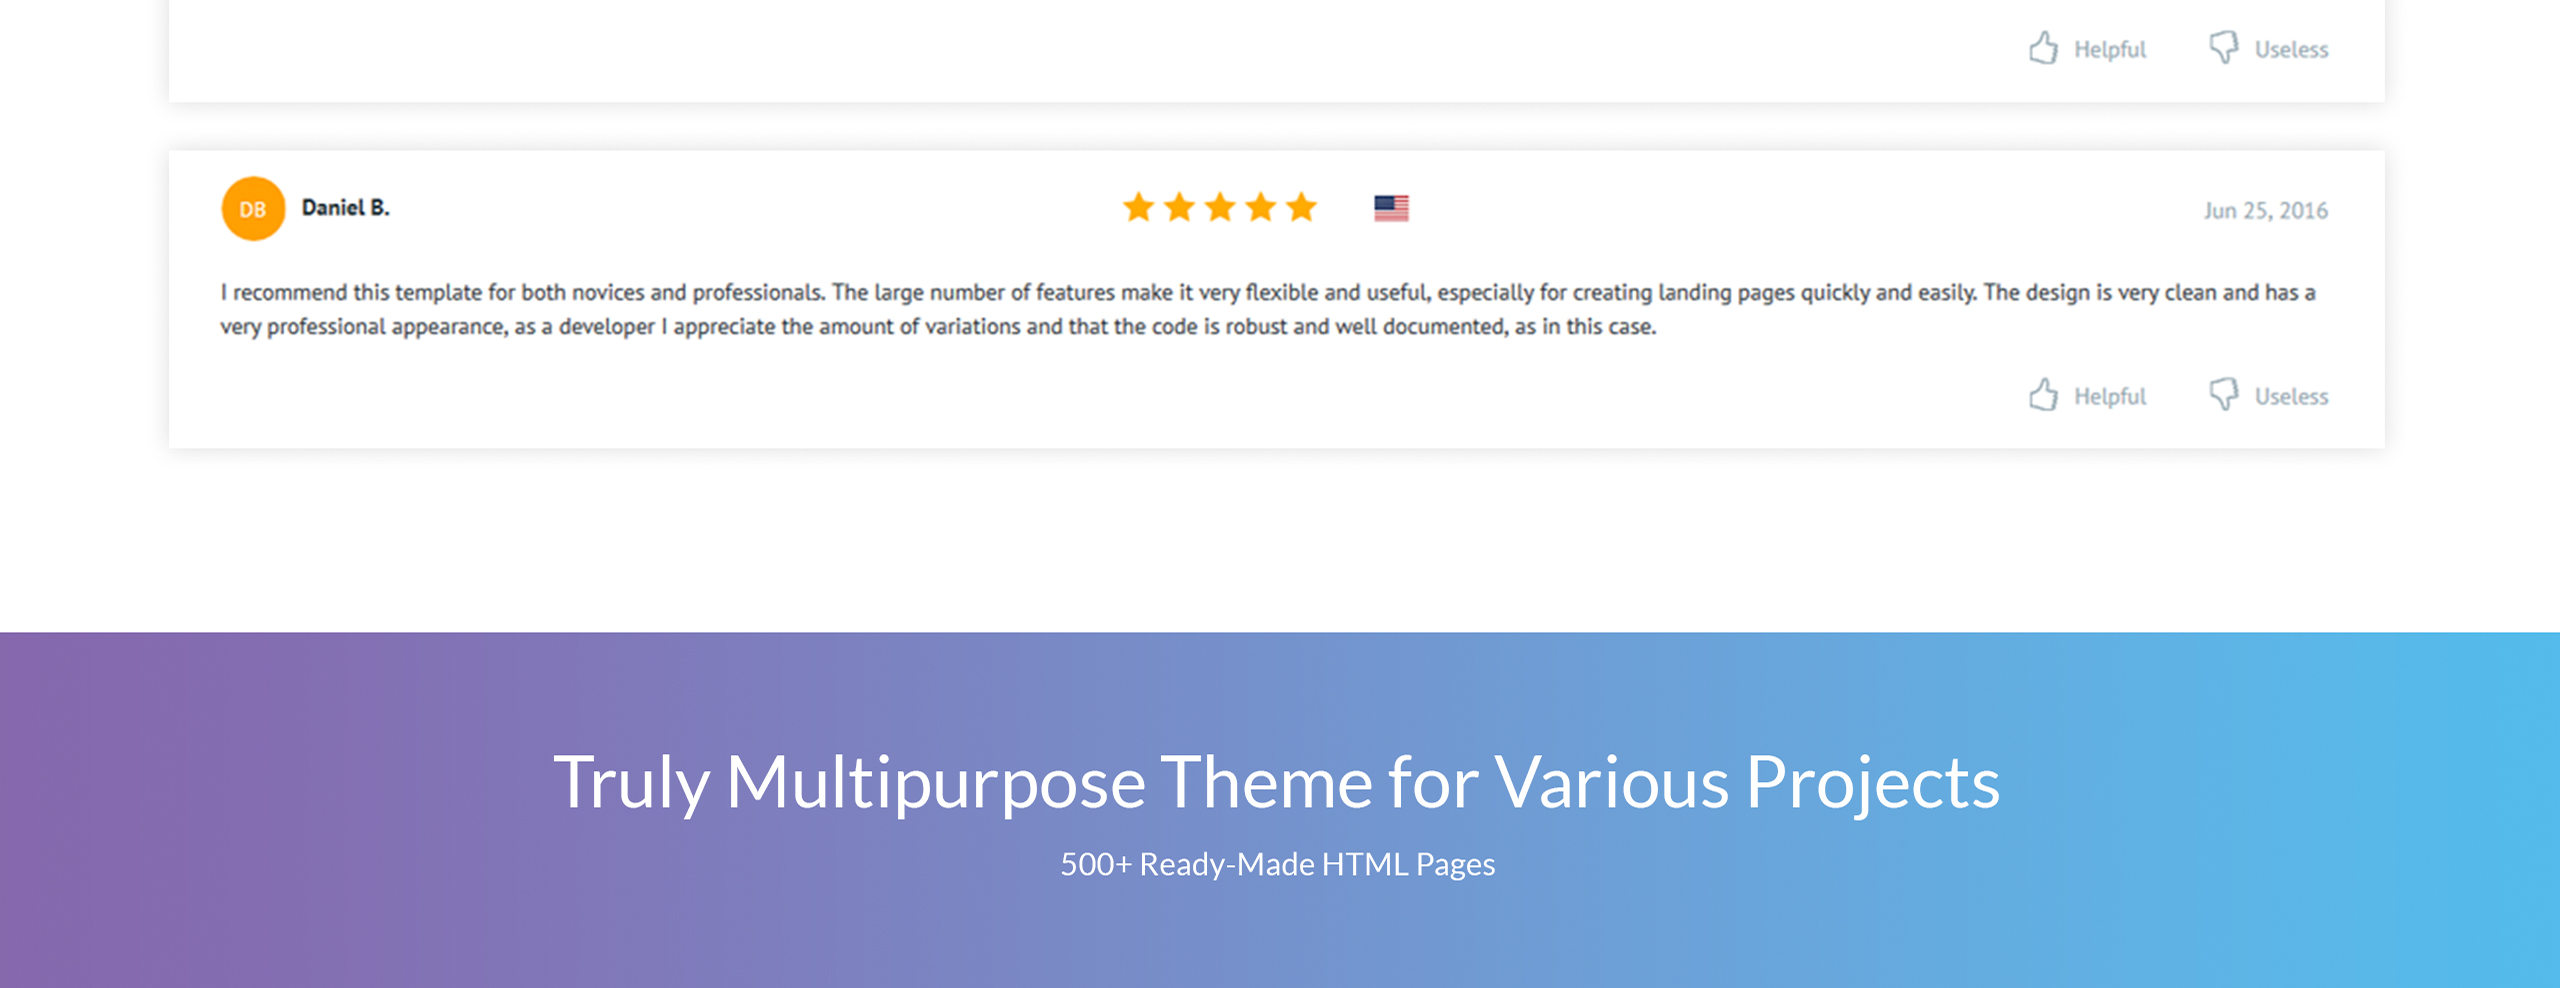 31651939 ... multi-purpose responsive website template that comes loaded with  literally everything you may think of when launching or upgrading your  blog, portfolio, ...